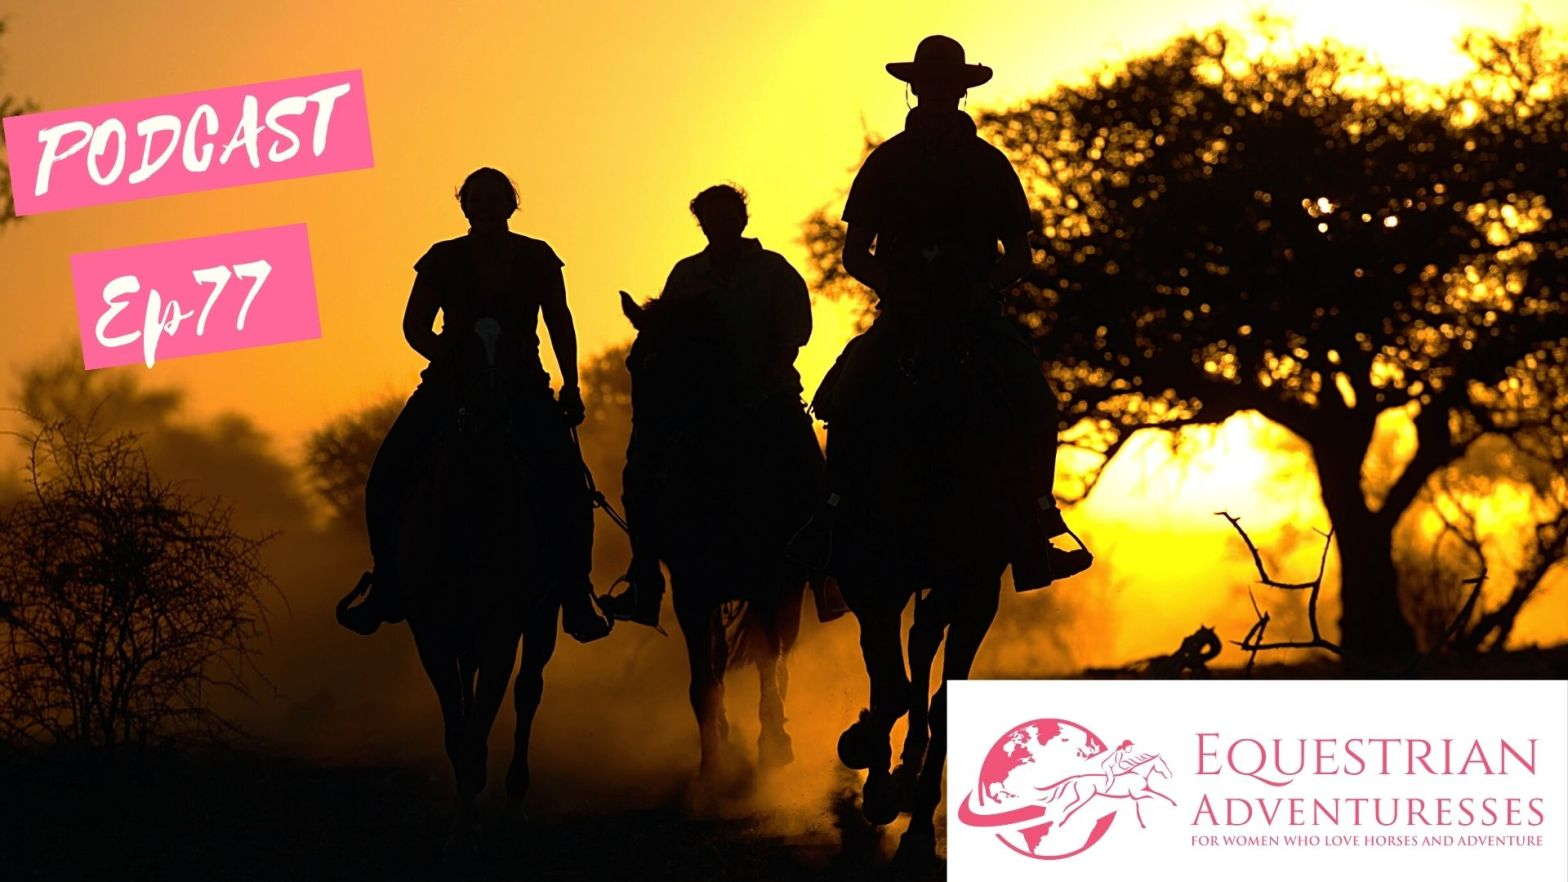 Equestrian Adventuresses Travel and Horse Podcast Ep 77 - Destination South Africa and Lesotho